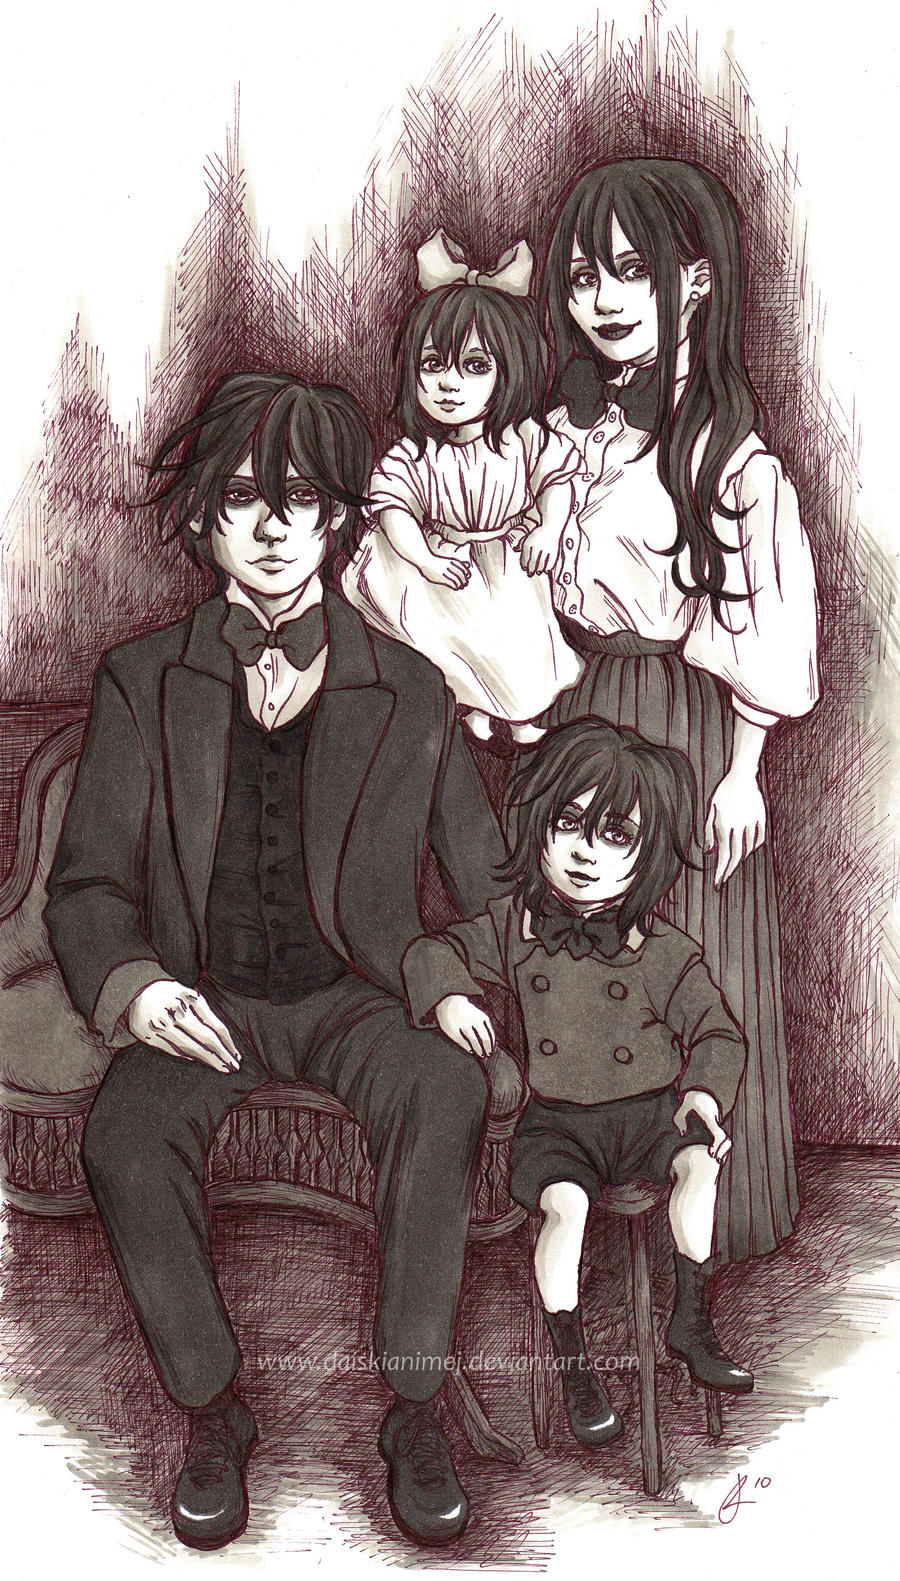 The Kuran Family Portrait by DaiskiAnimeJ on DeviantArt